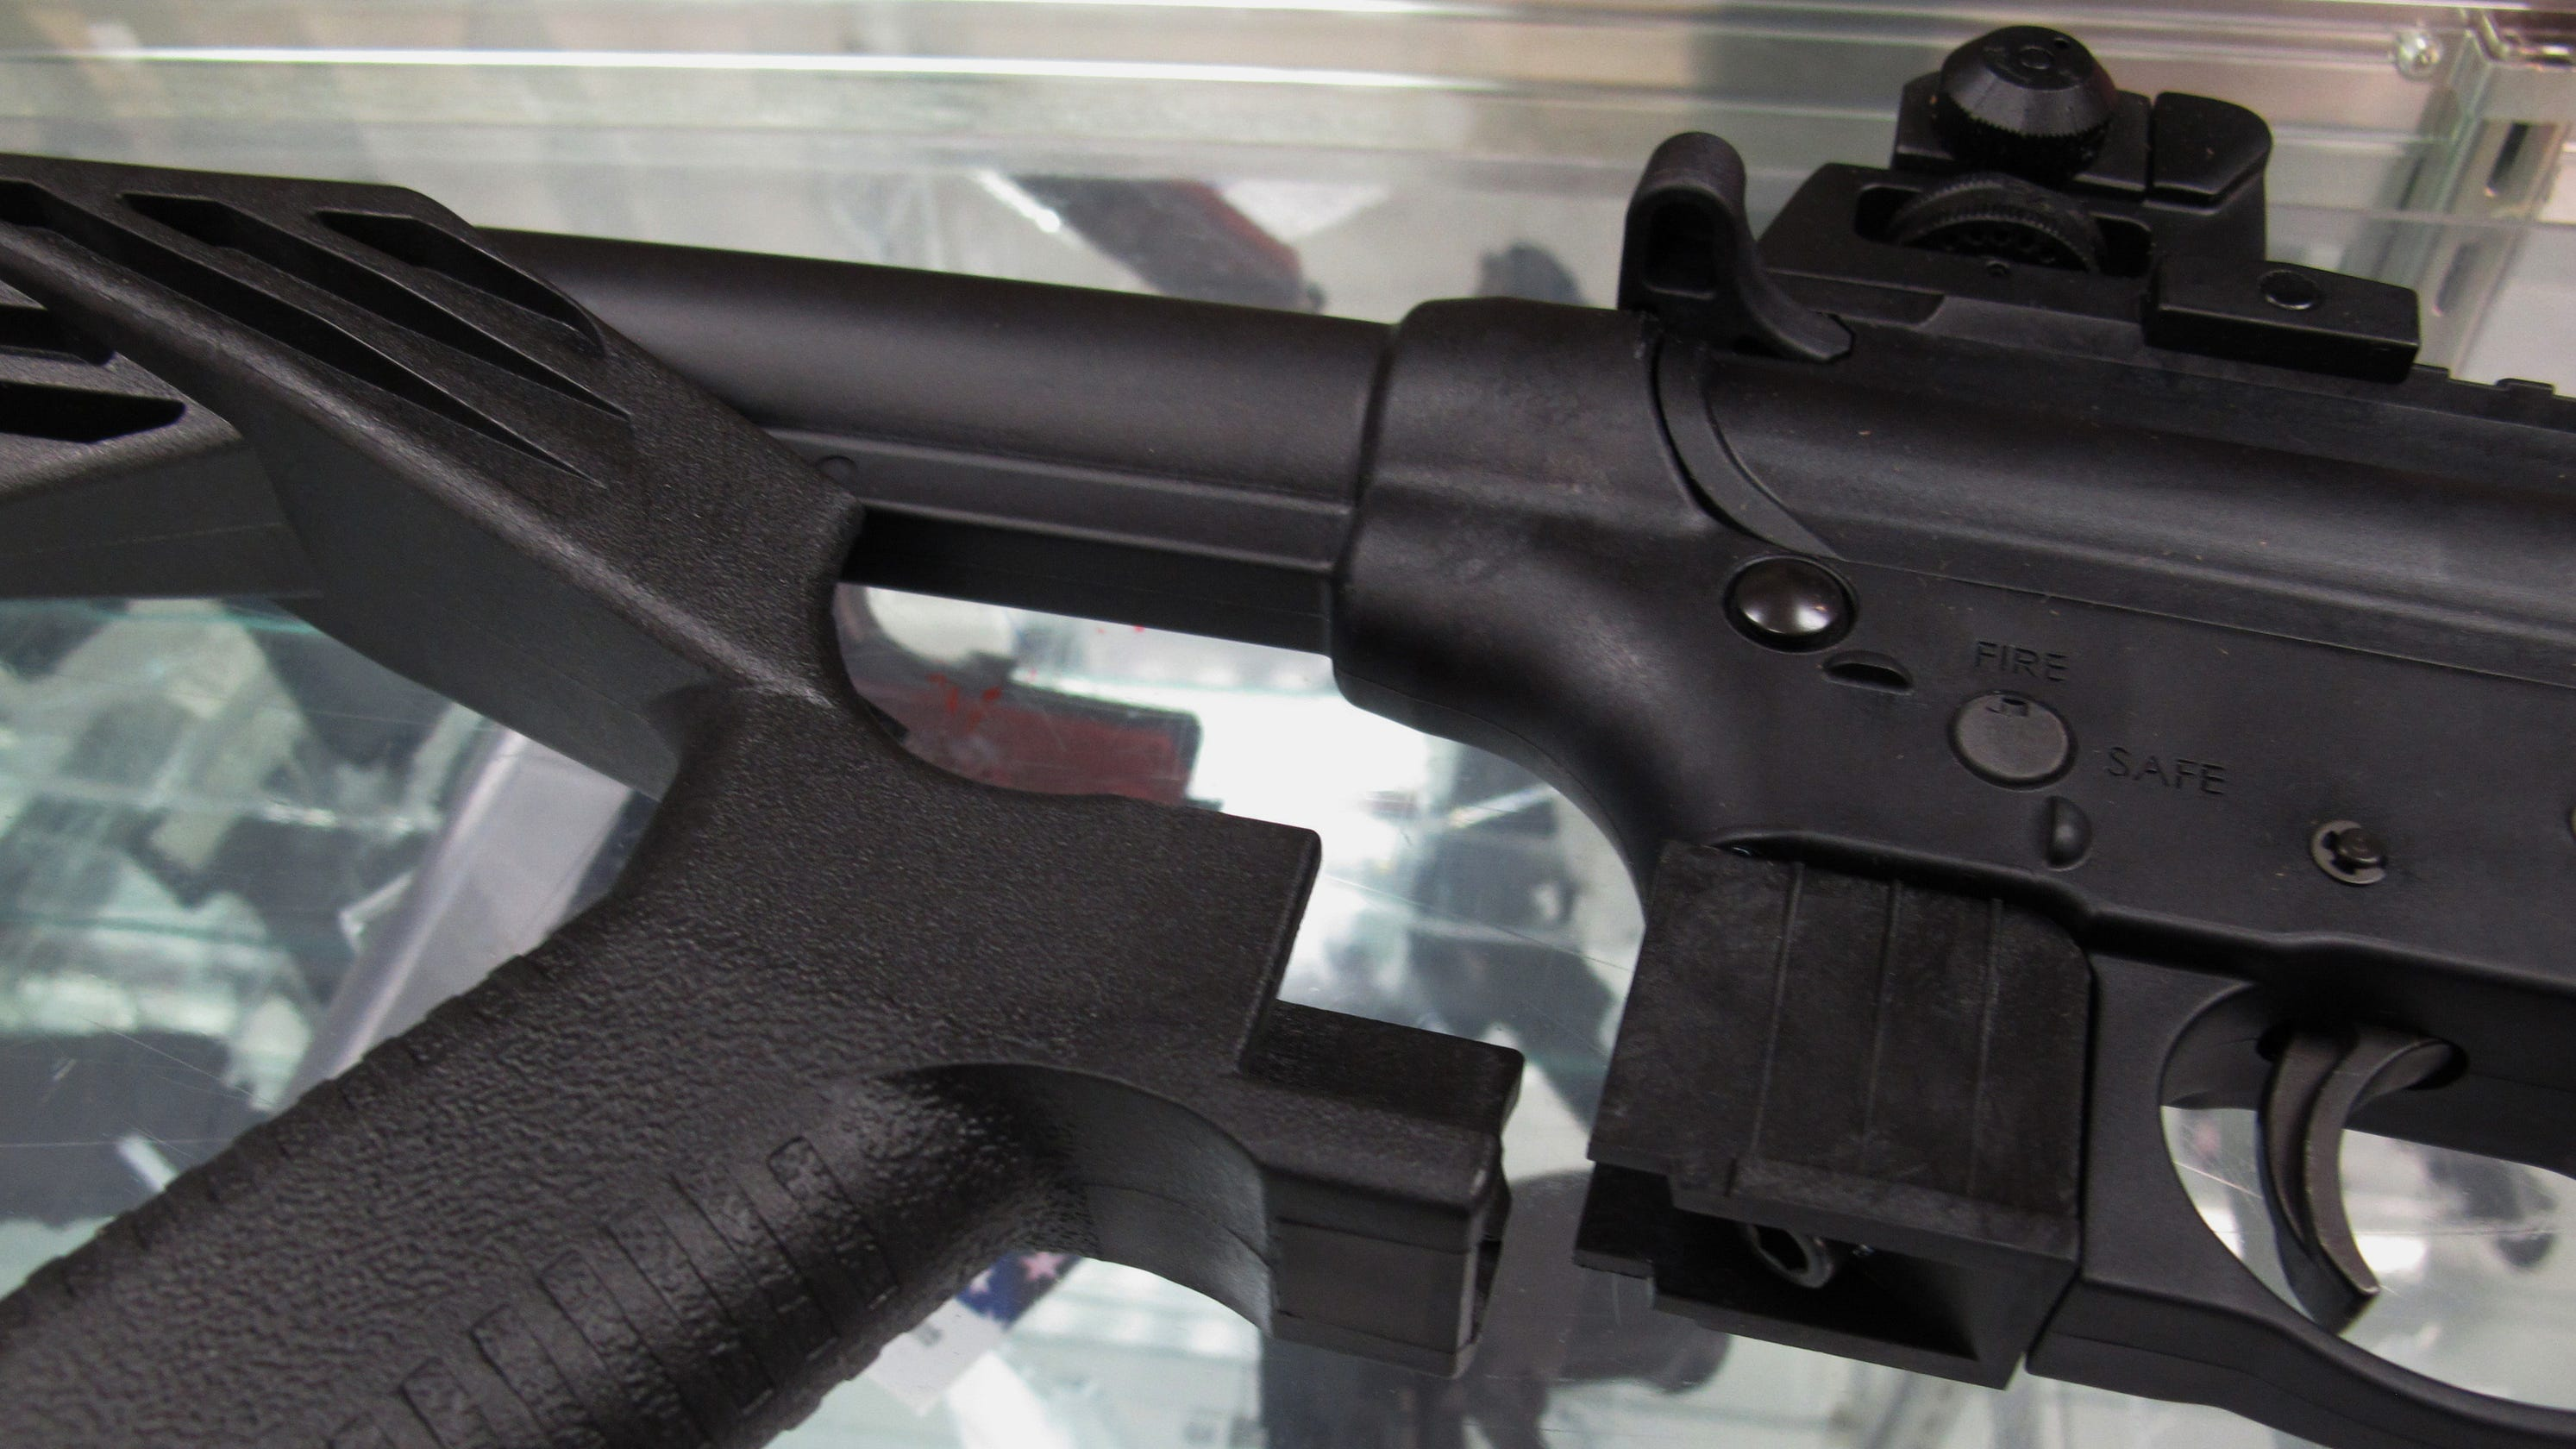 Justice Department bans bump stocks, devices used in Las